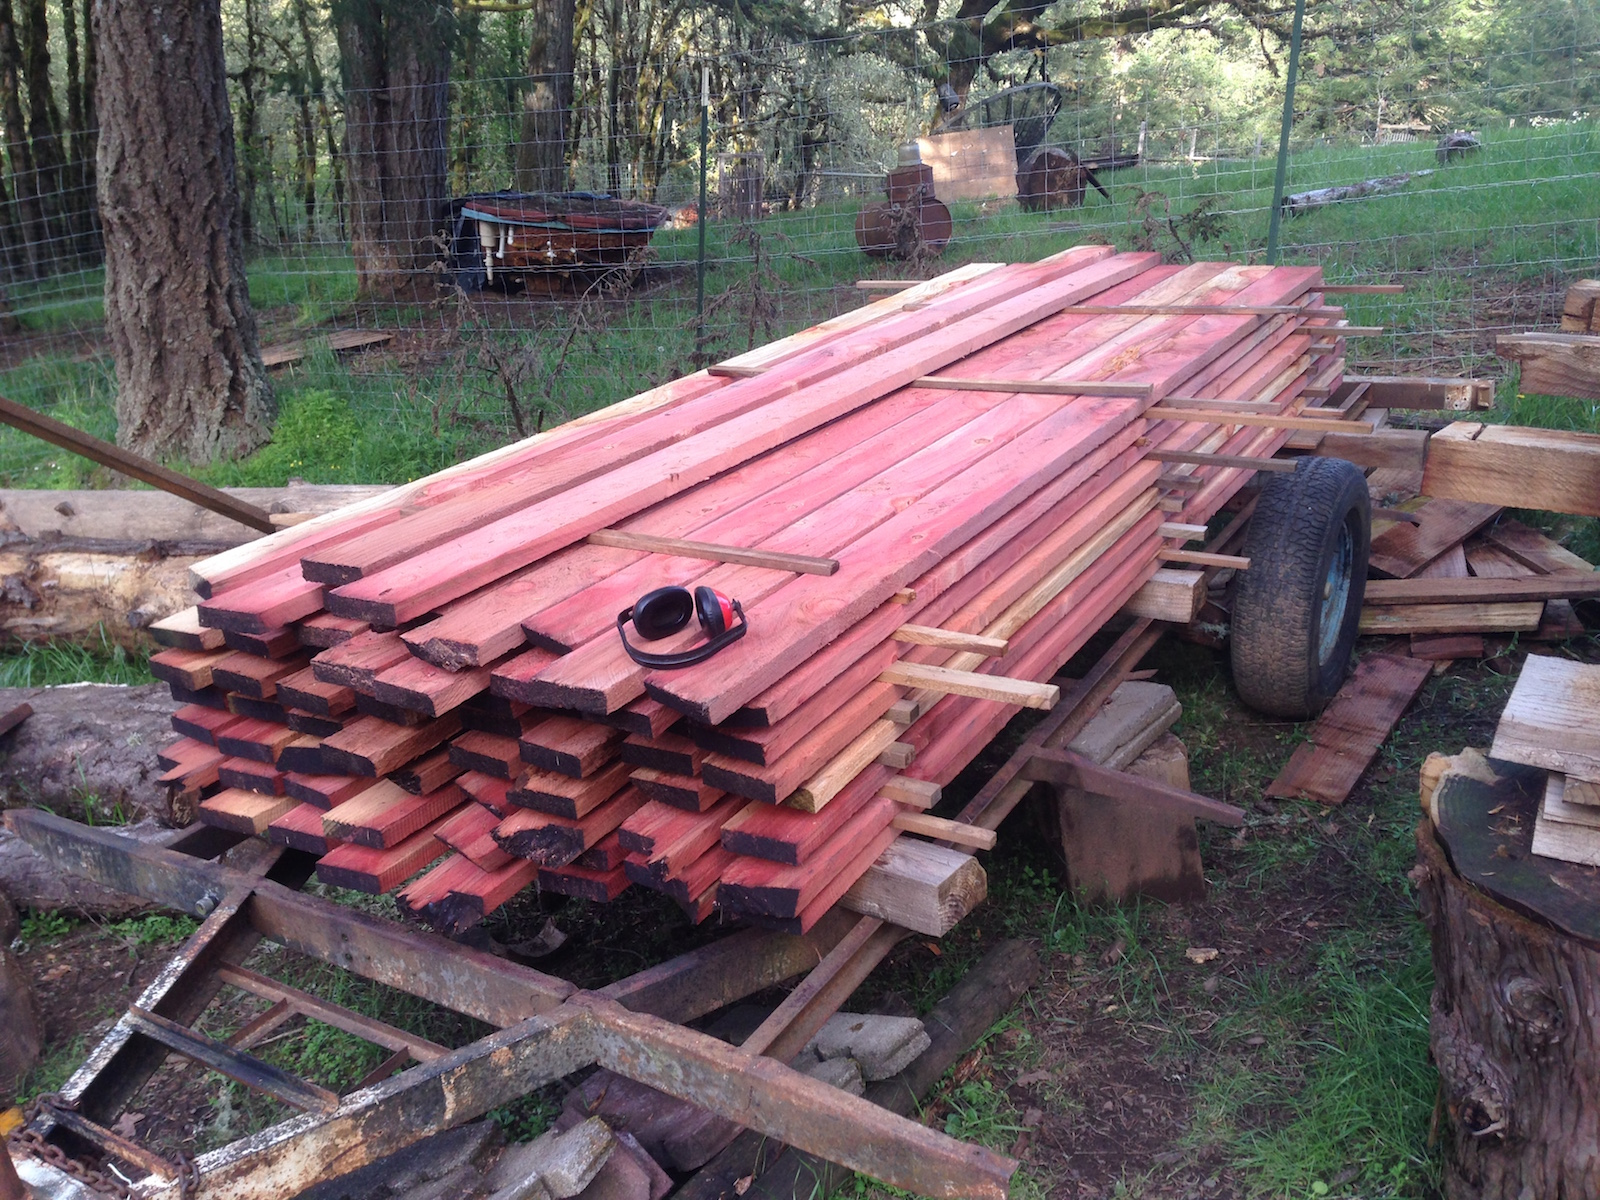 Approx 800 bd ft of rough-sawn redwood decking for the front deck of a neighbor's yurt